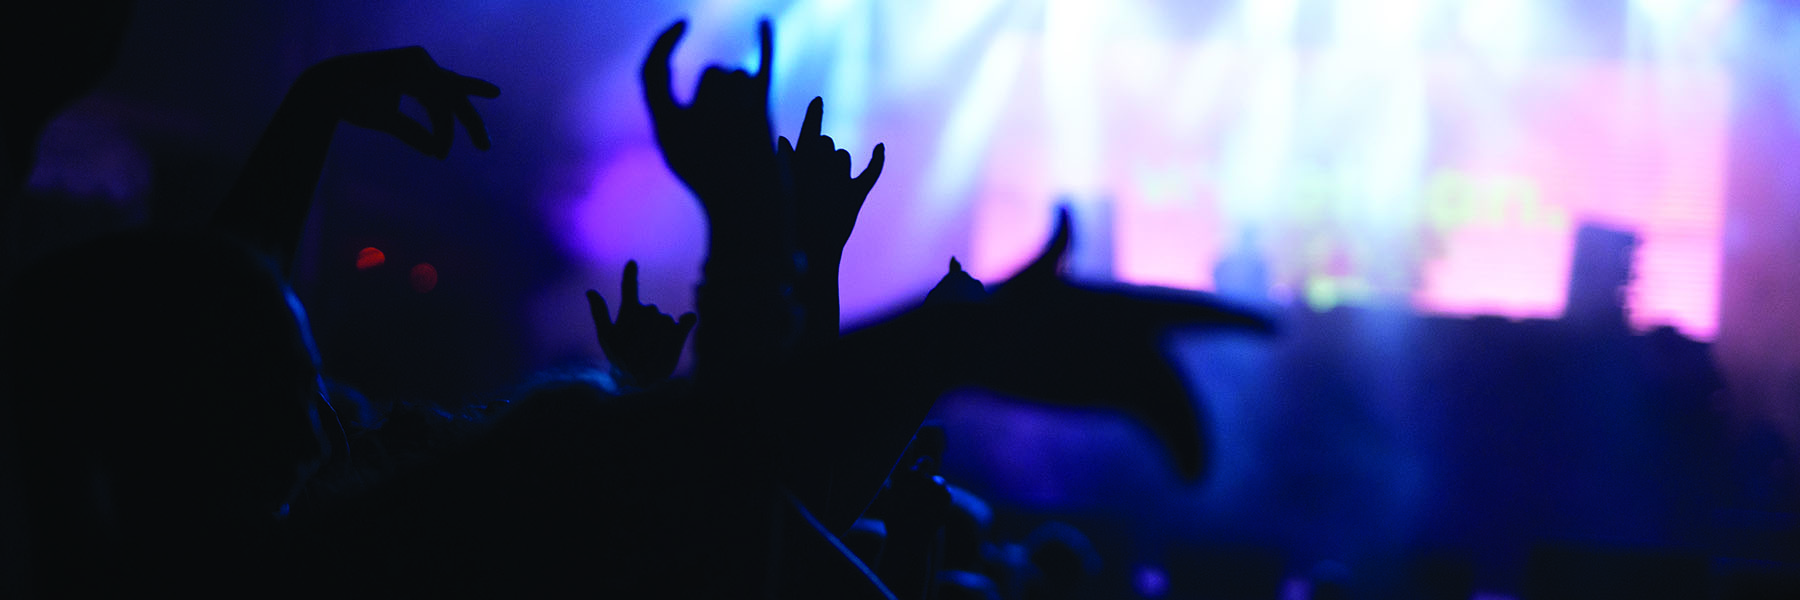 silhouetted hands raised at a concert